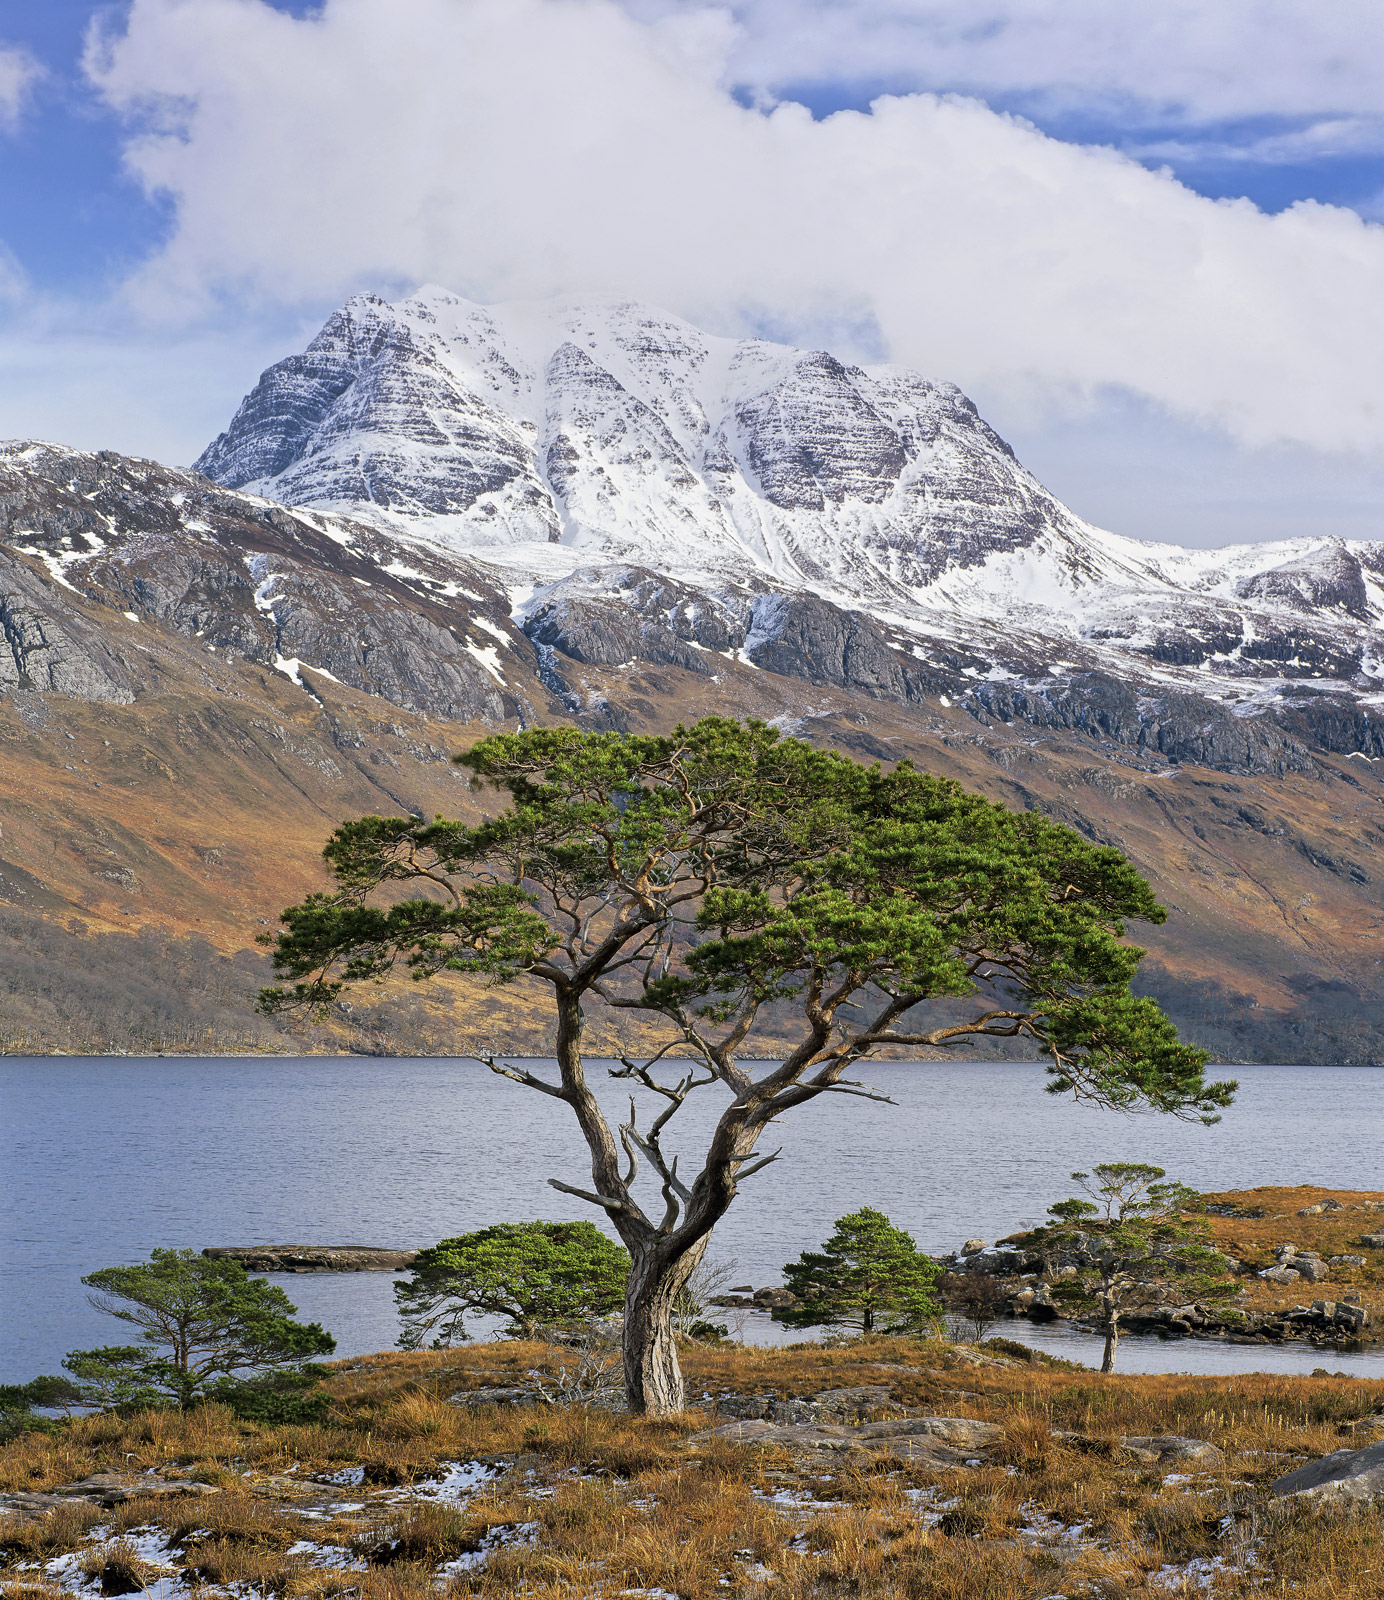 The umbrella canopy of a gorgeous scots pine tree mimics the crown of the snow dusted molar that is Slioch an inaccessible Munro...